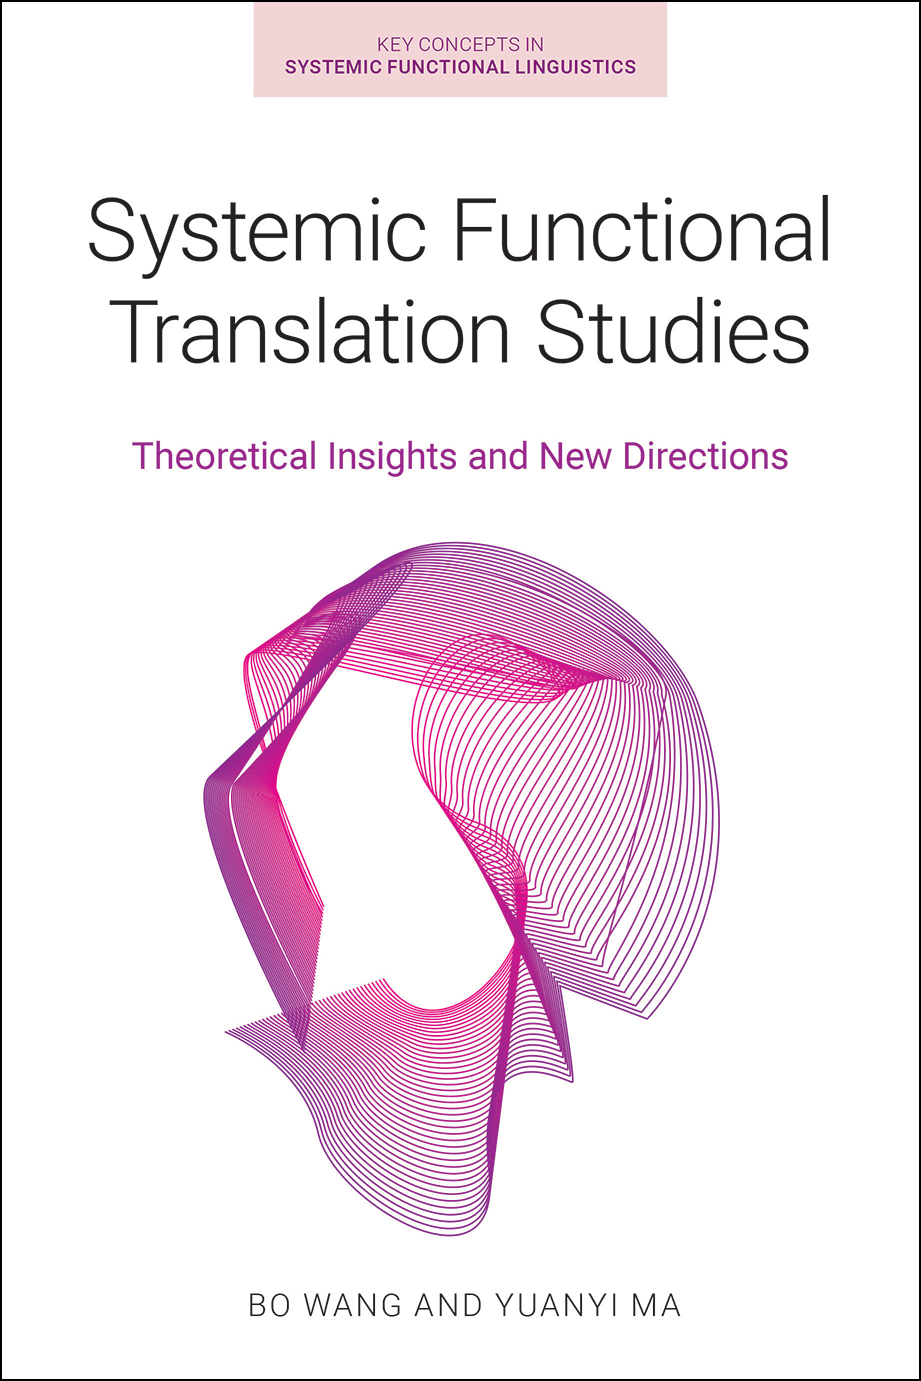 Systemic Functional Translation Studies - Theoretical Insights and New Directions - Bo Wang